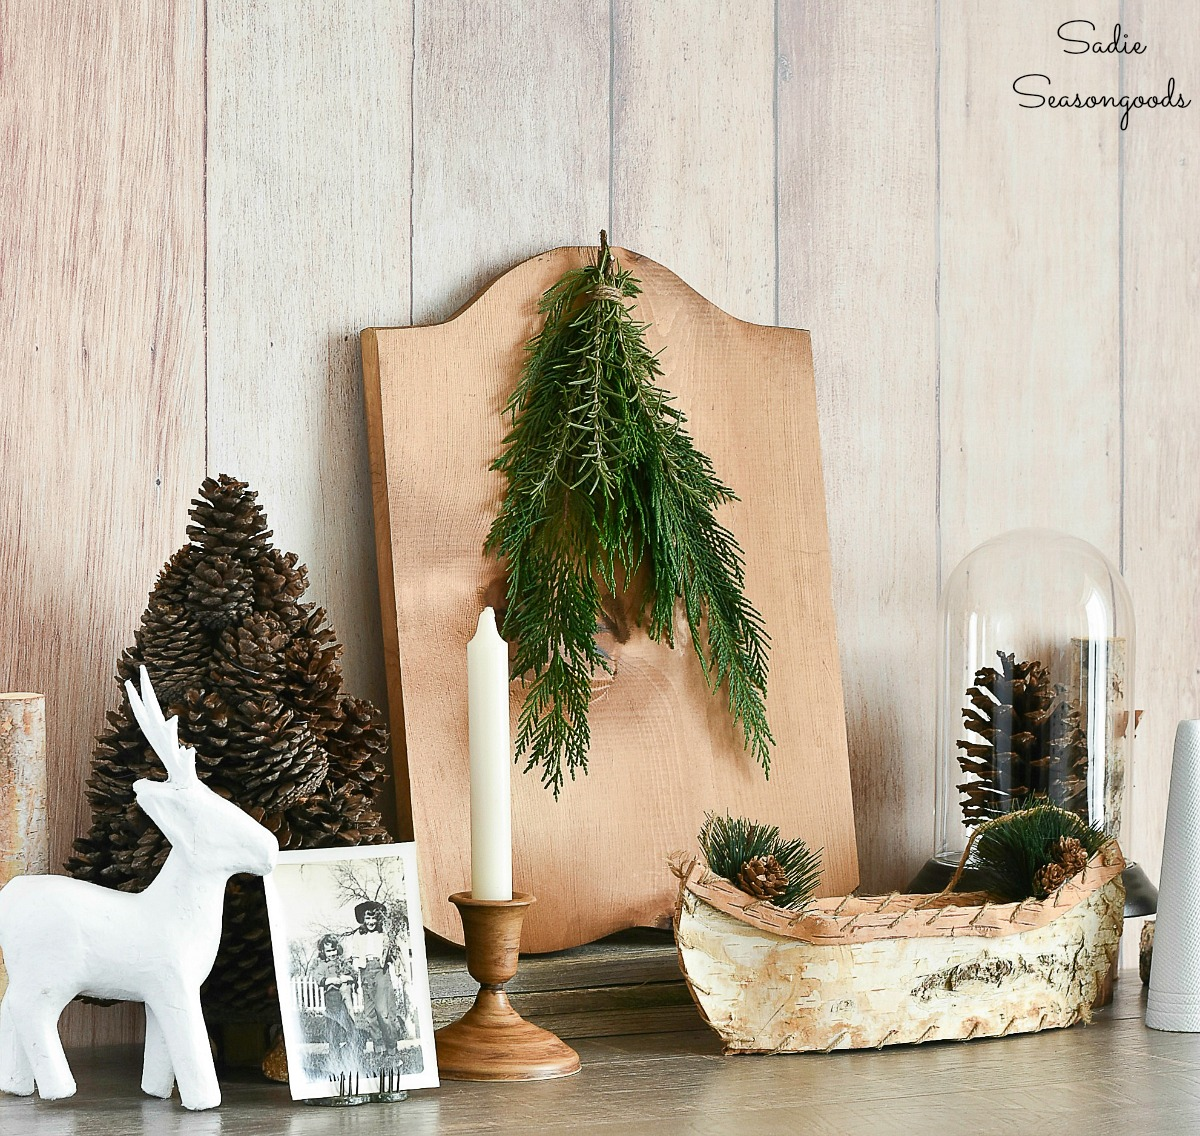 Winter Cabin and Rustic Chic Decor